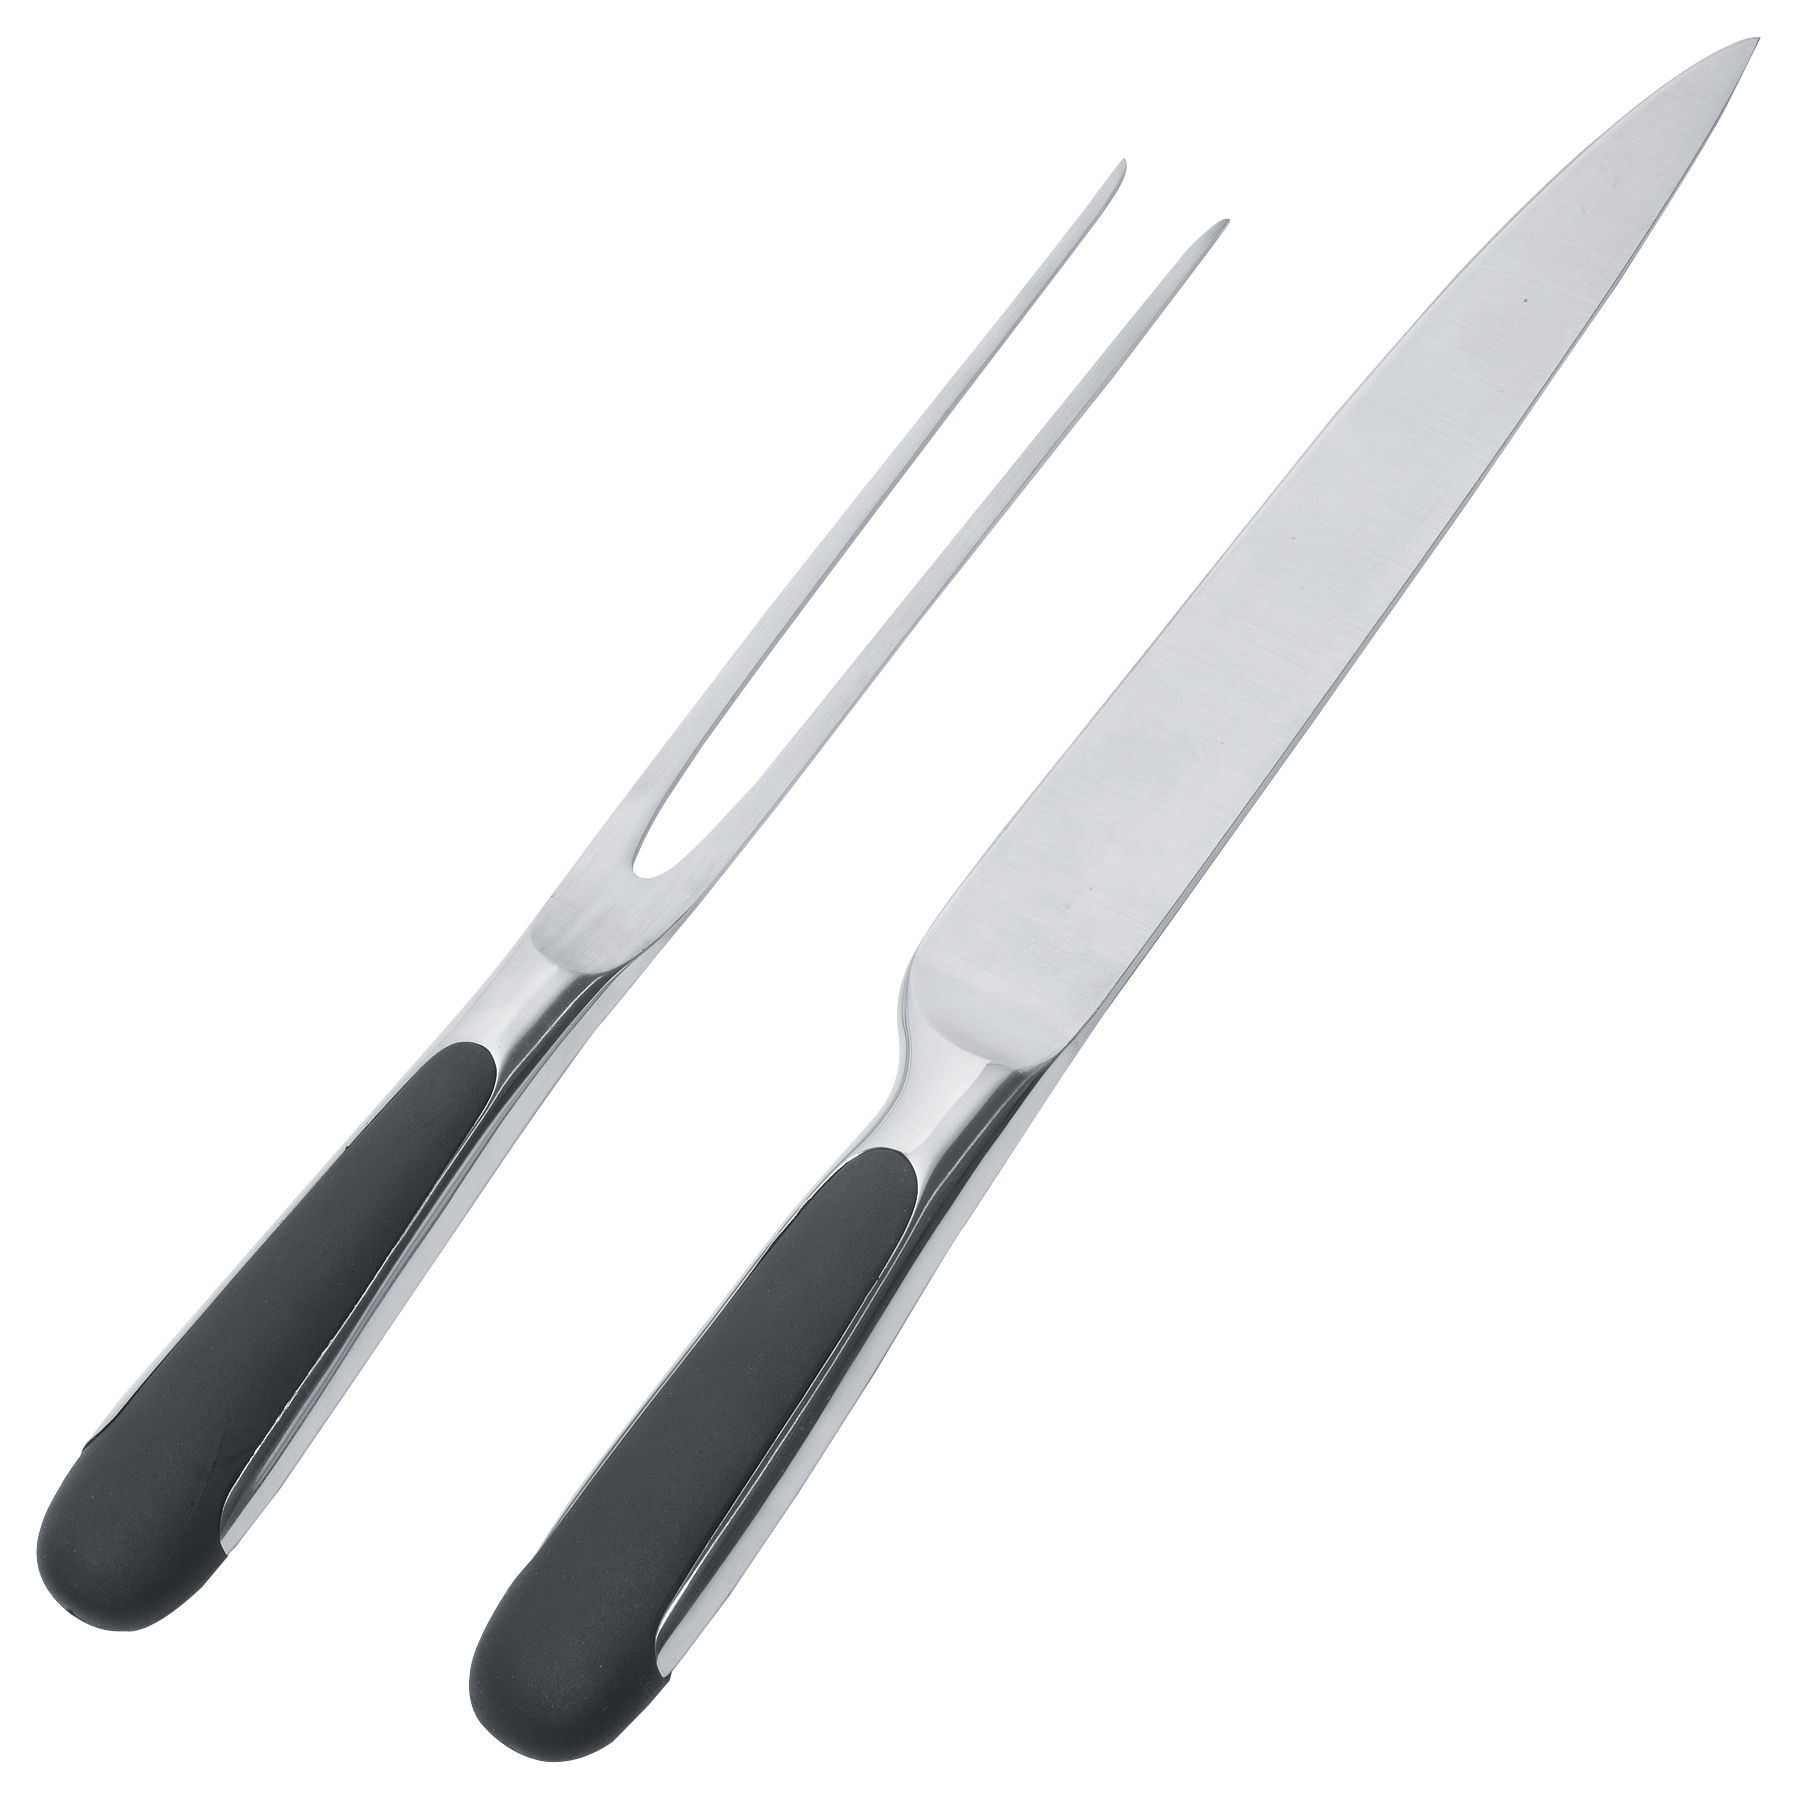 Forchetta Coltello Posate Da Trancio Mami Set Forchetta Coltello Di Alessi